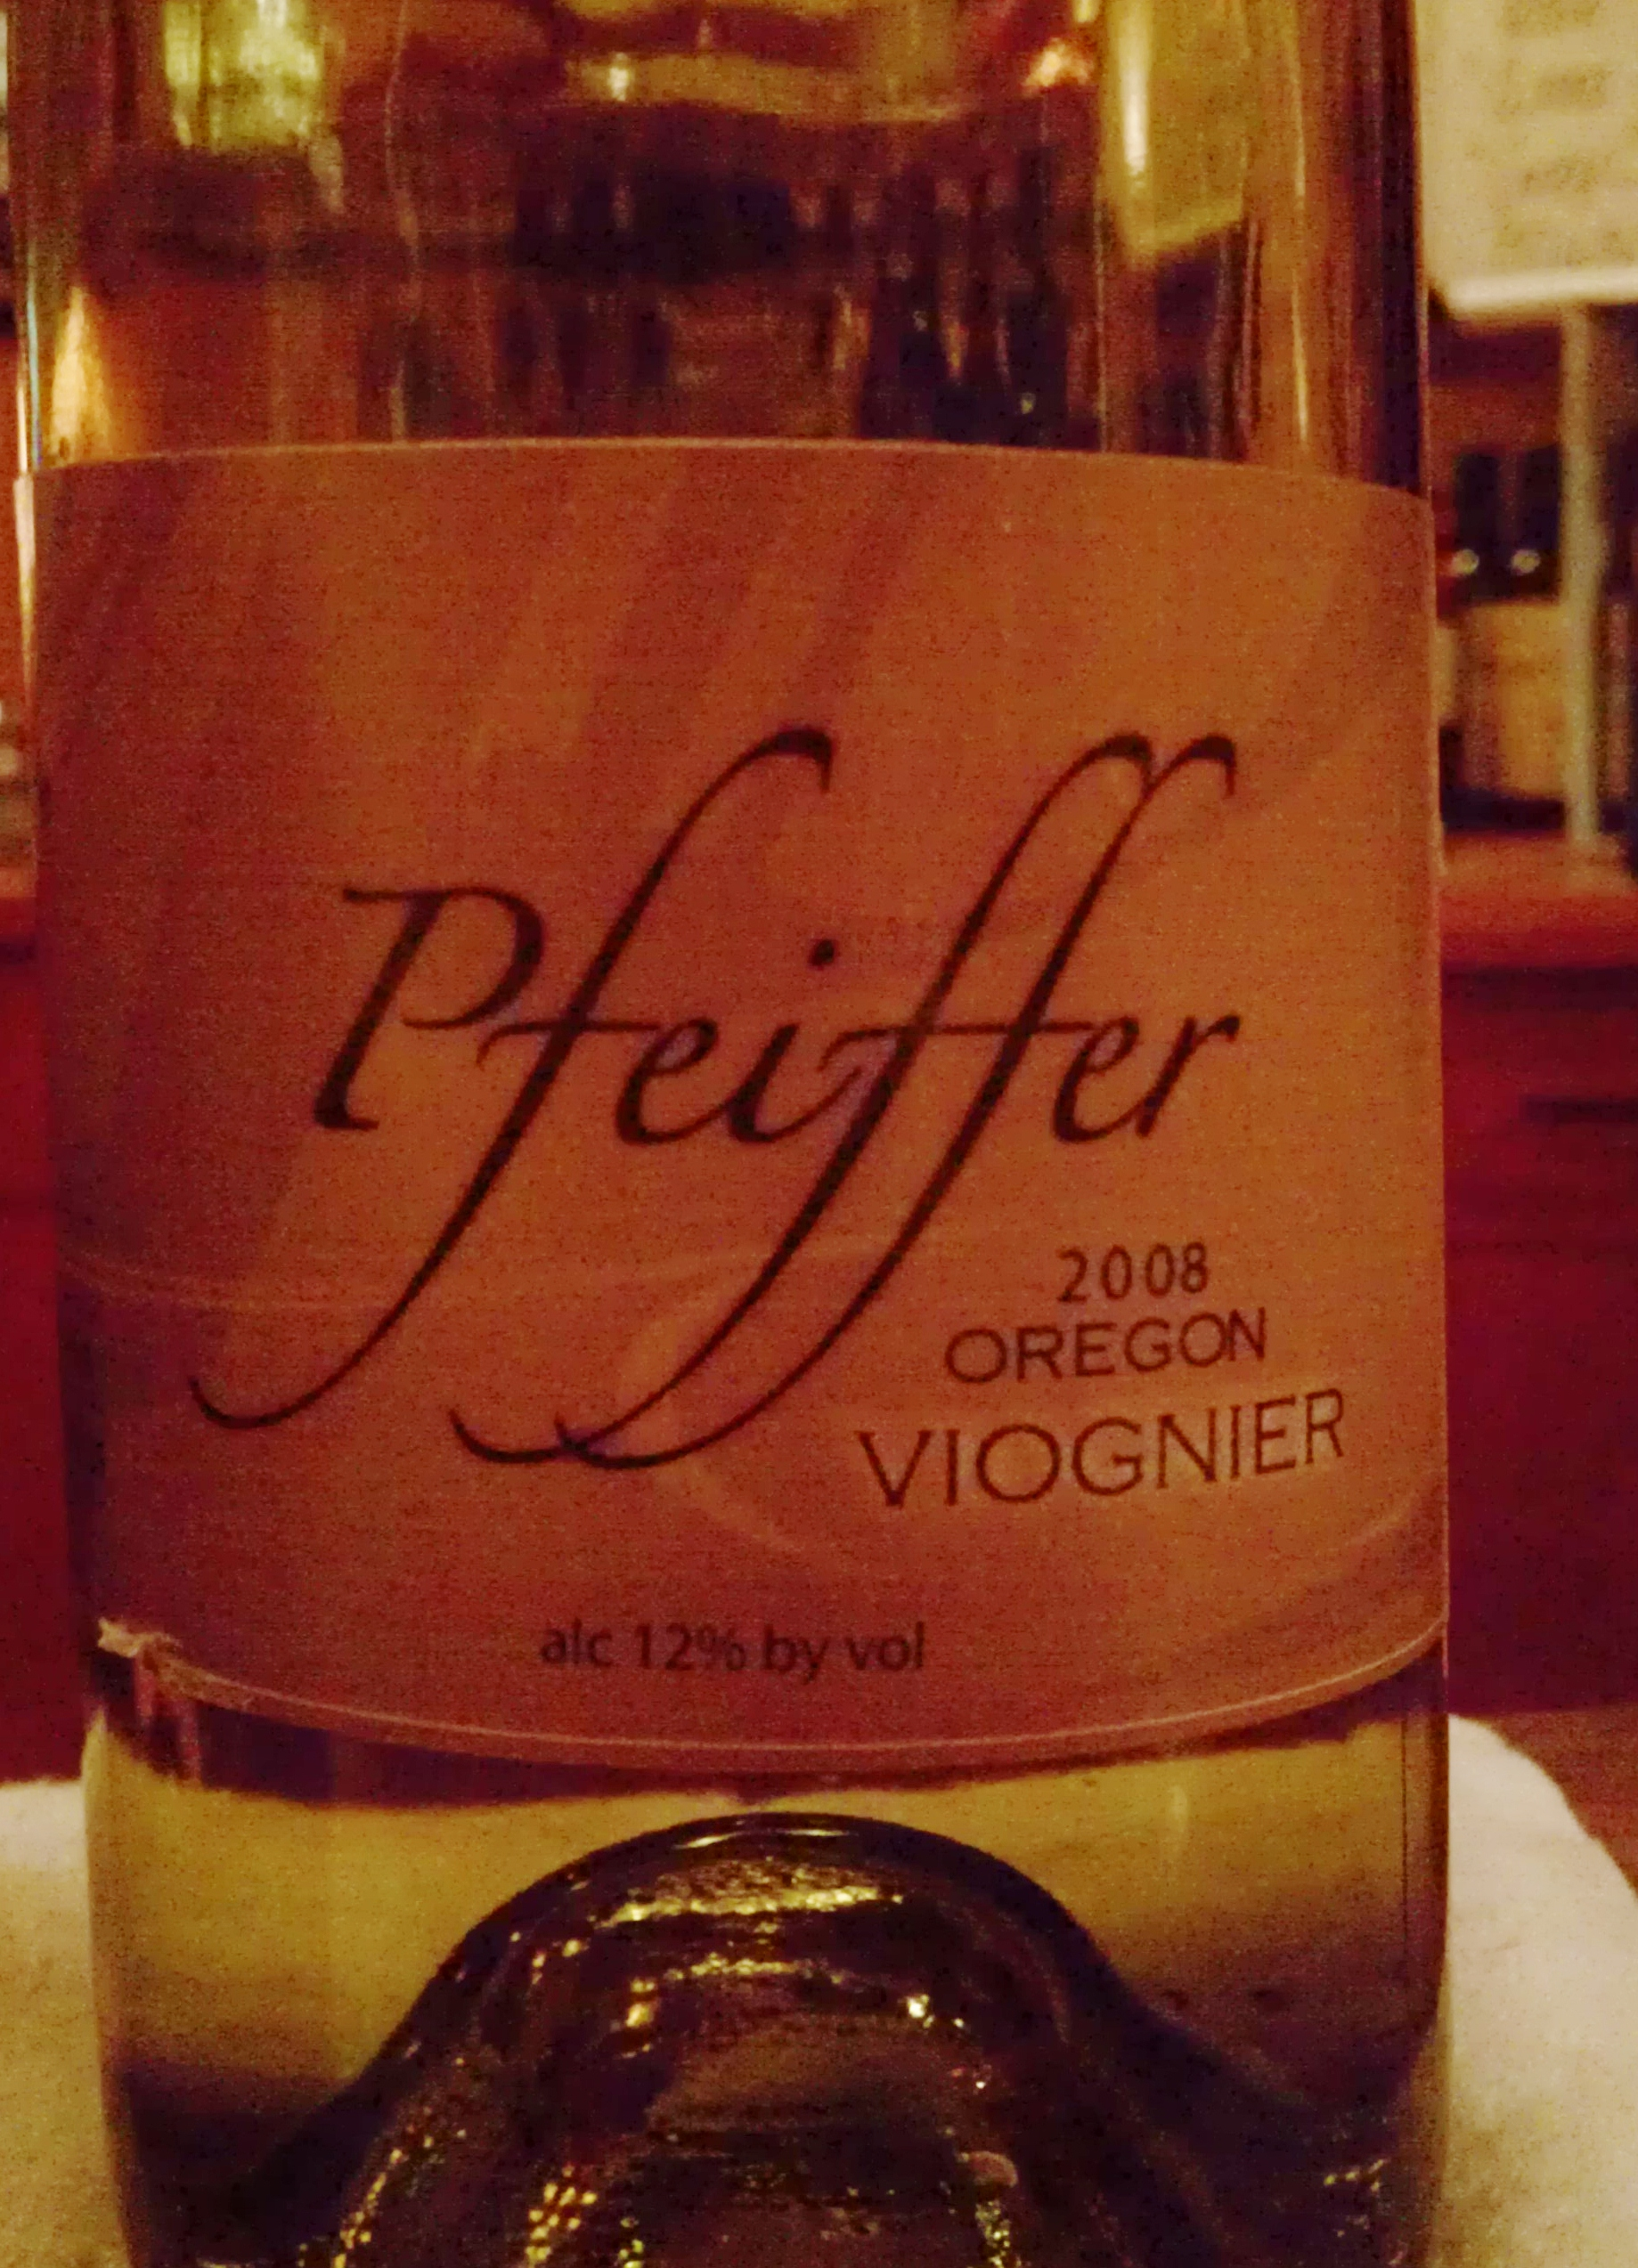 In The Glass: Pfeiffer Viognier 2008